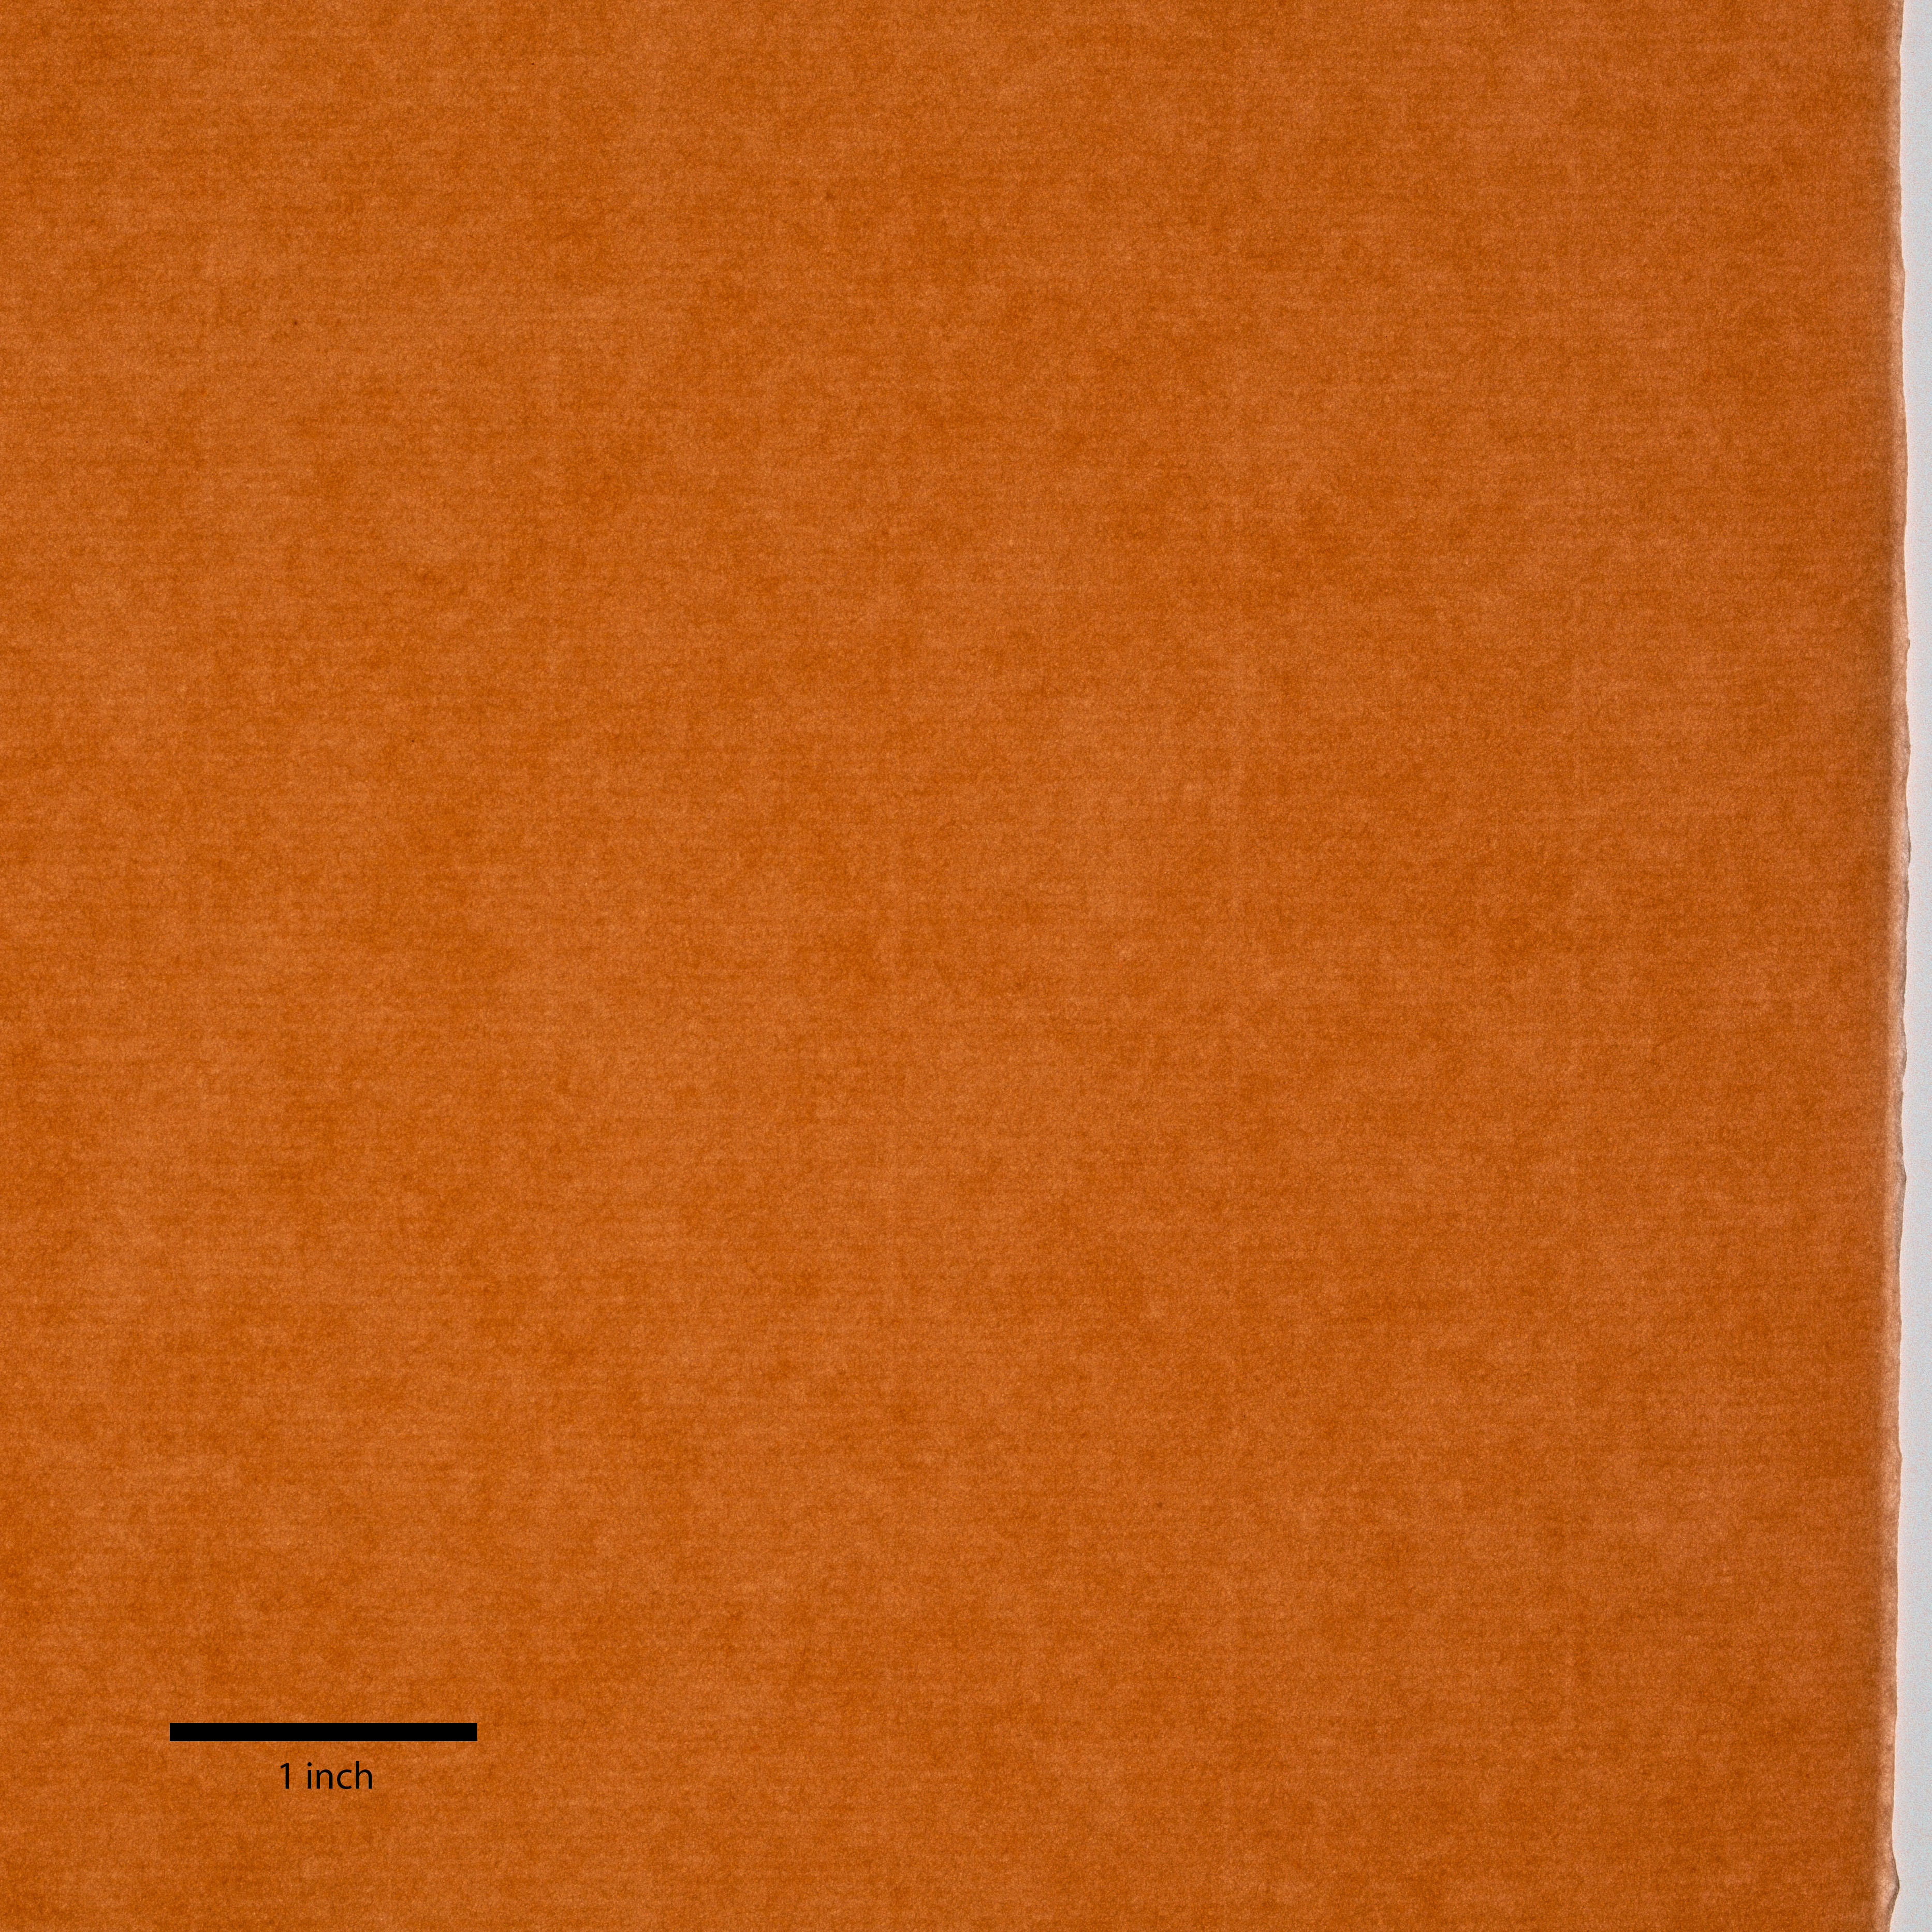 An even-colored dark orange sheet has a lighter colored edge on the right side. A thick black line marks one inch at bottom left.